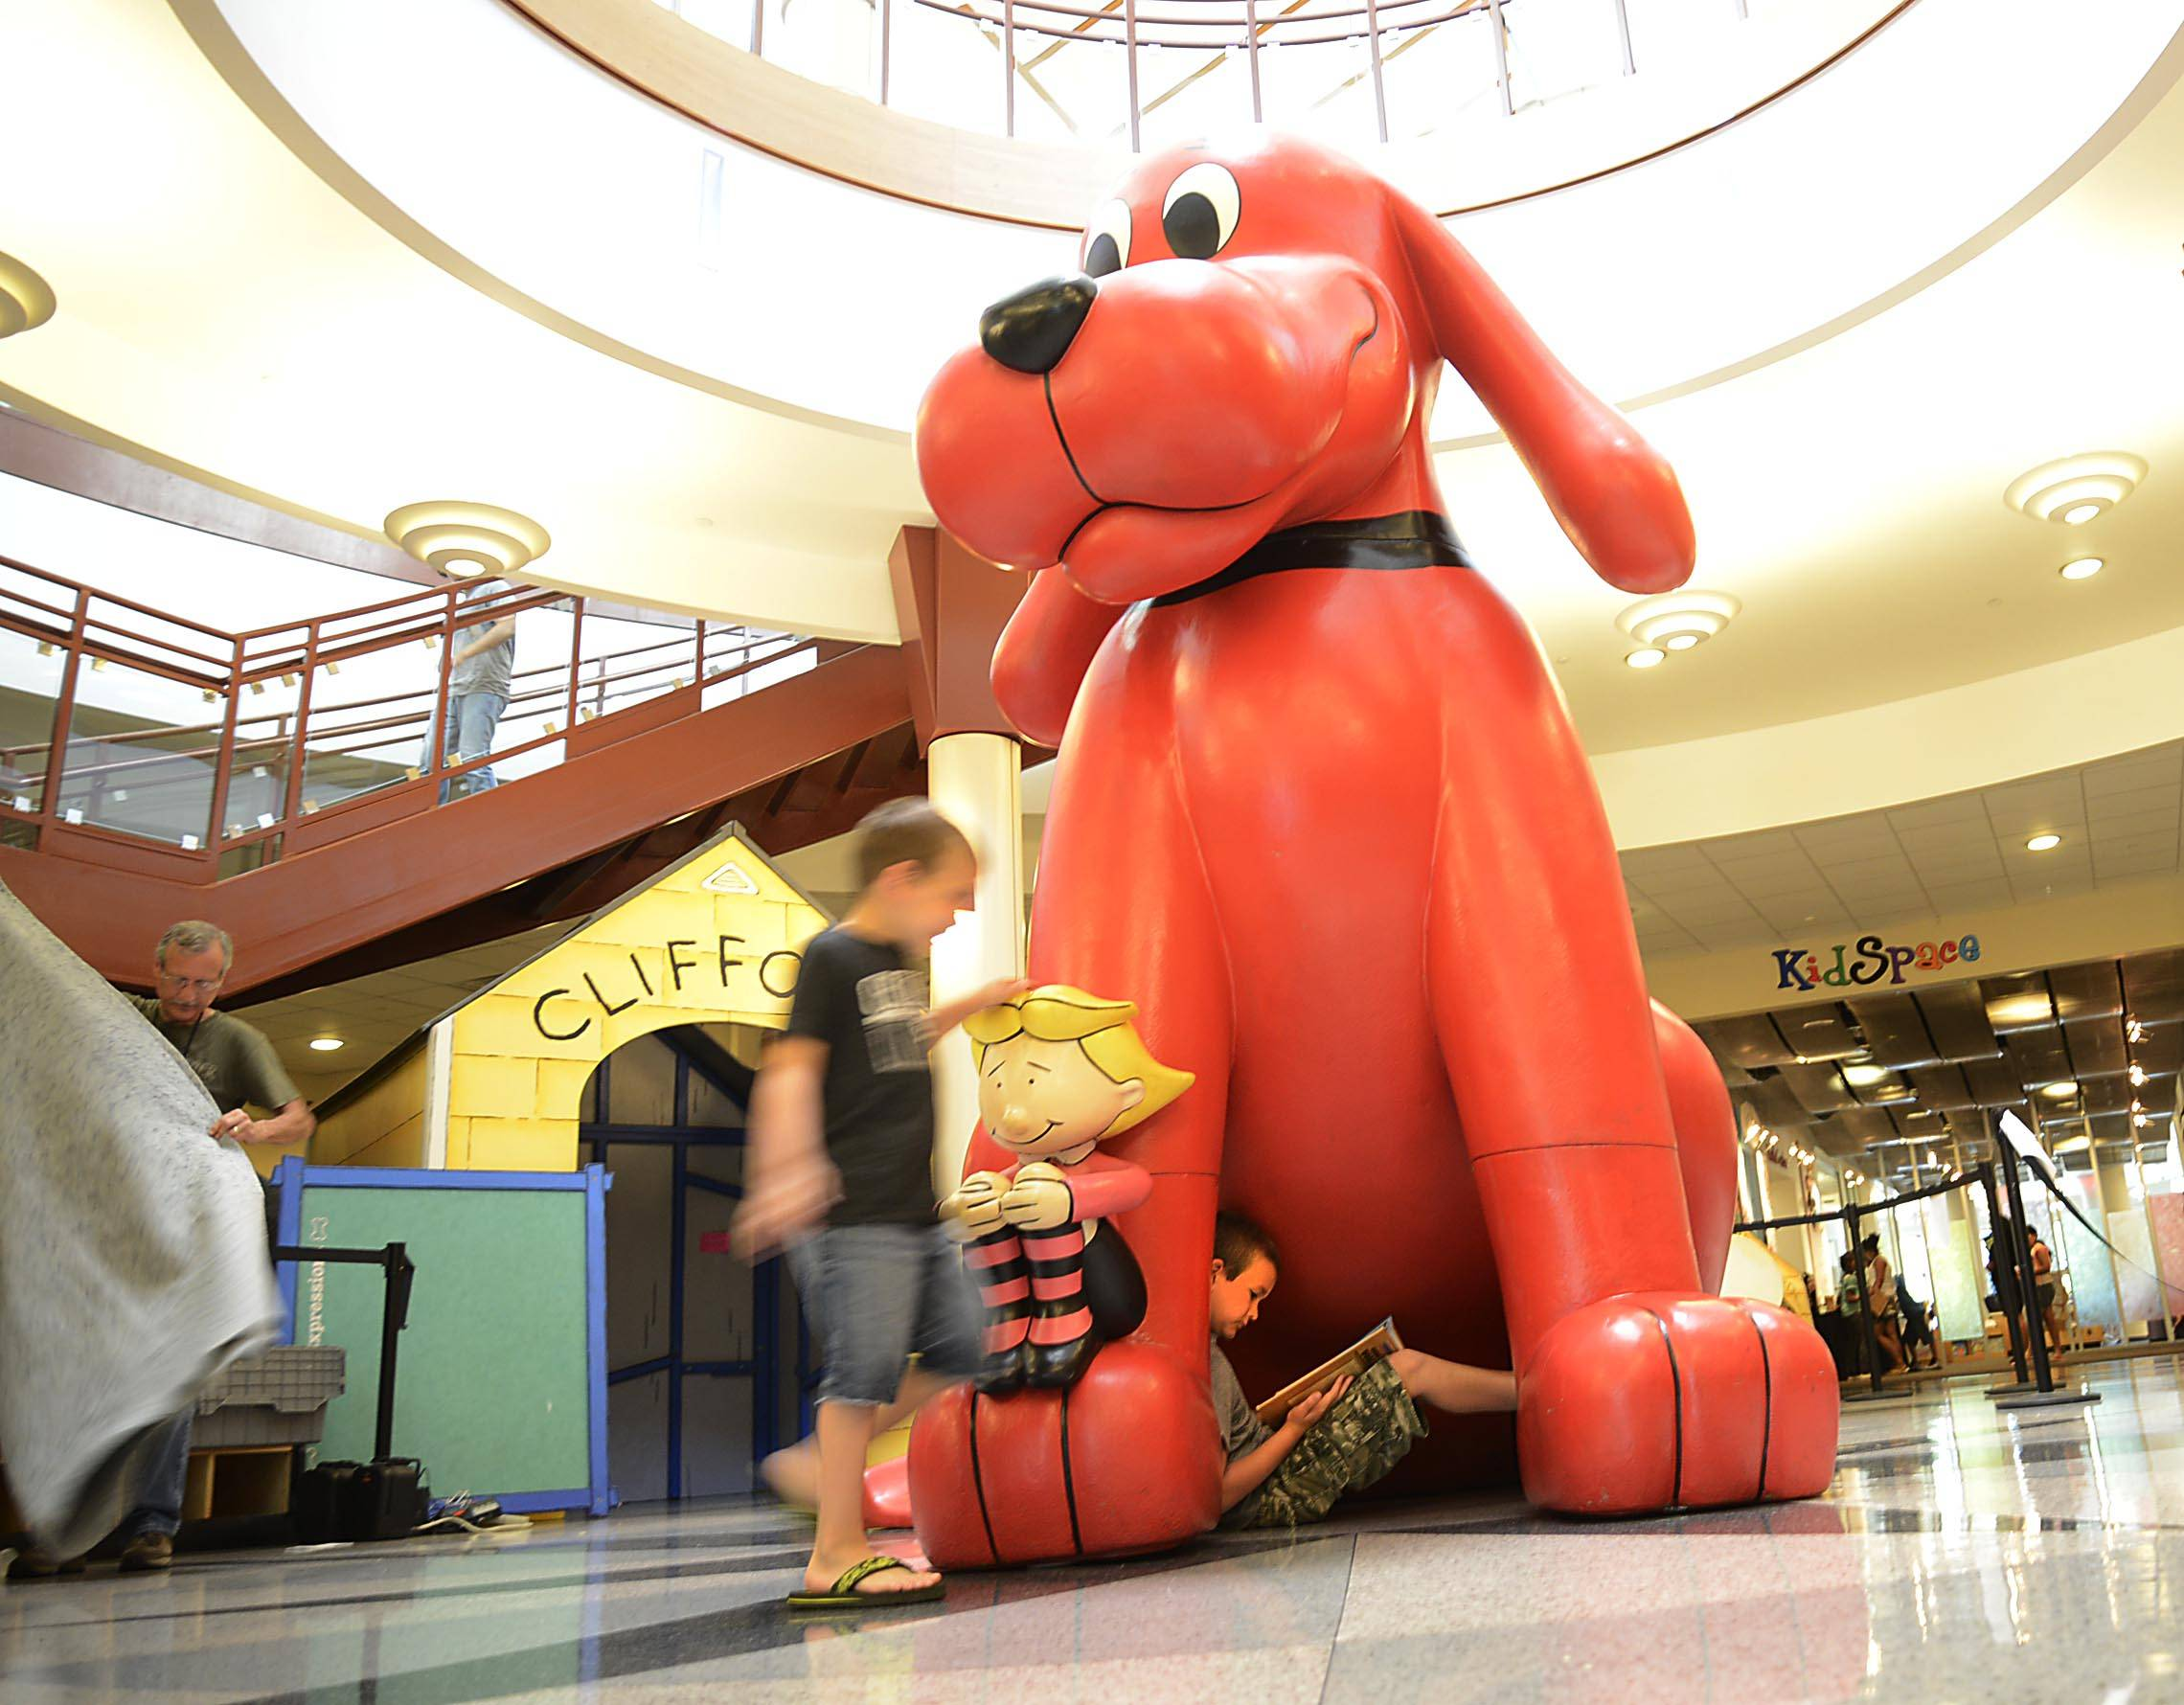 Trevor Willis, 7, sits under a nine-foot Clifford The Big Red Dog exhibit at the Gail Borden Public Library Tuesday in Elgin, as his brother Jonathan explores the site. The Elgin boys were with their mother Clara. The 10-site, interactive exhibit is part of the summer reading program called Paws to Read.